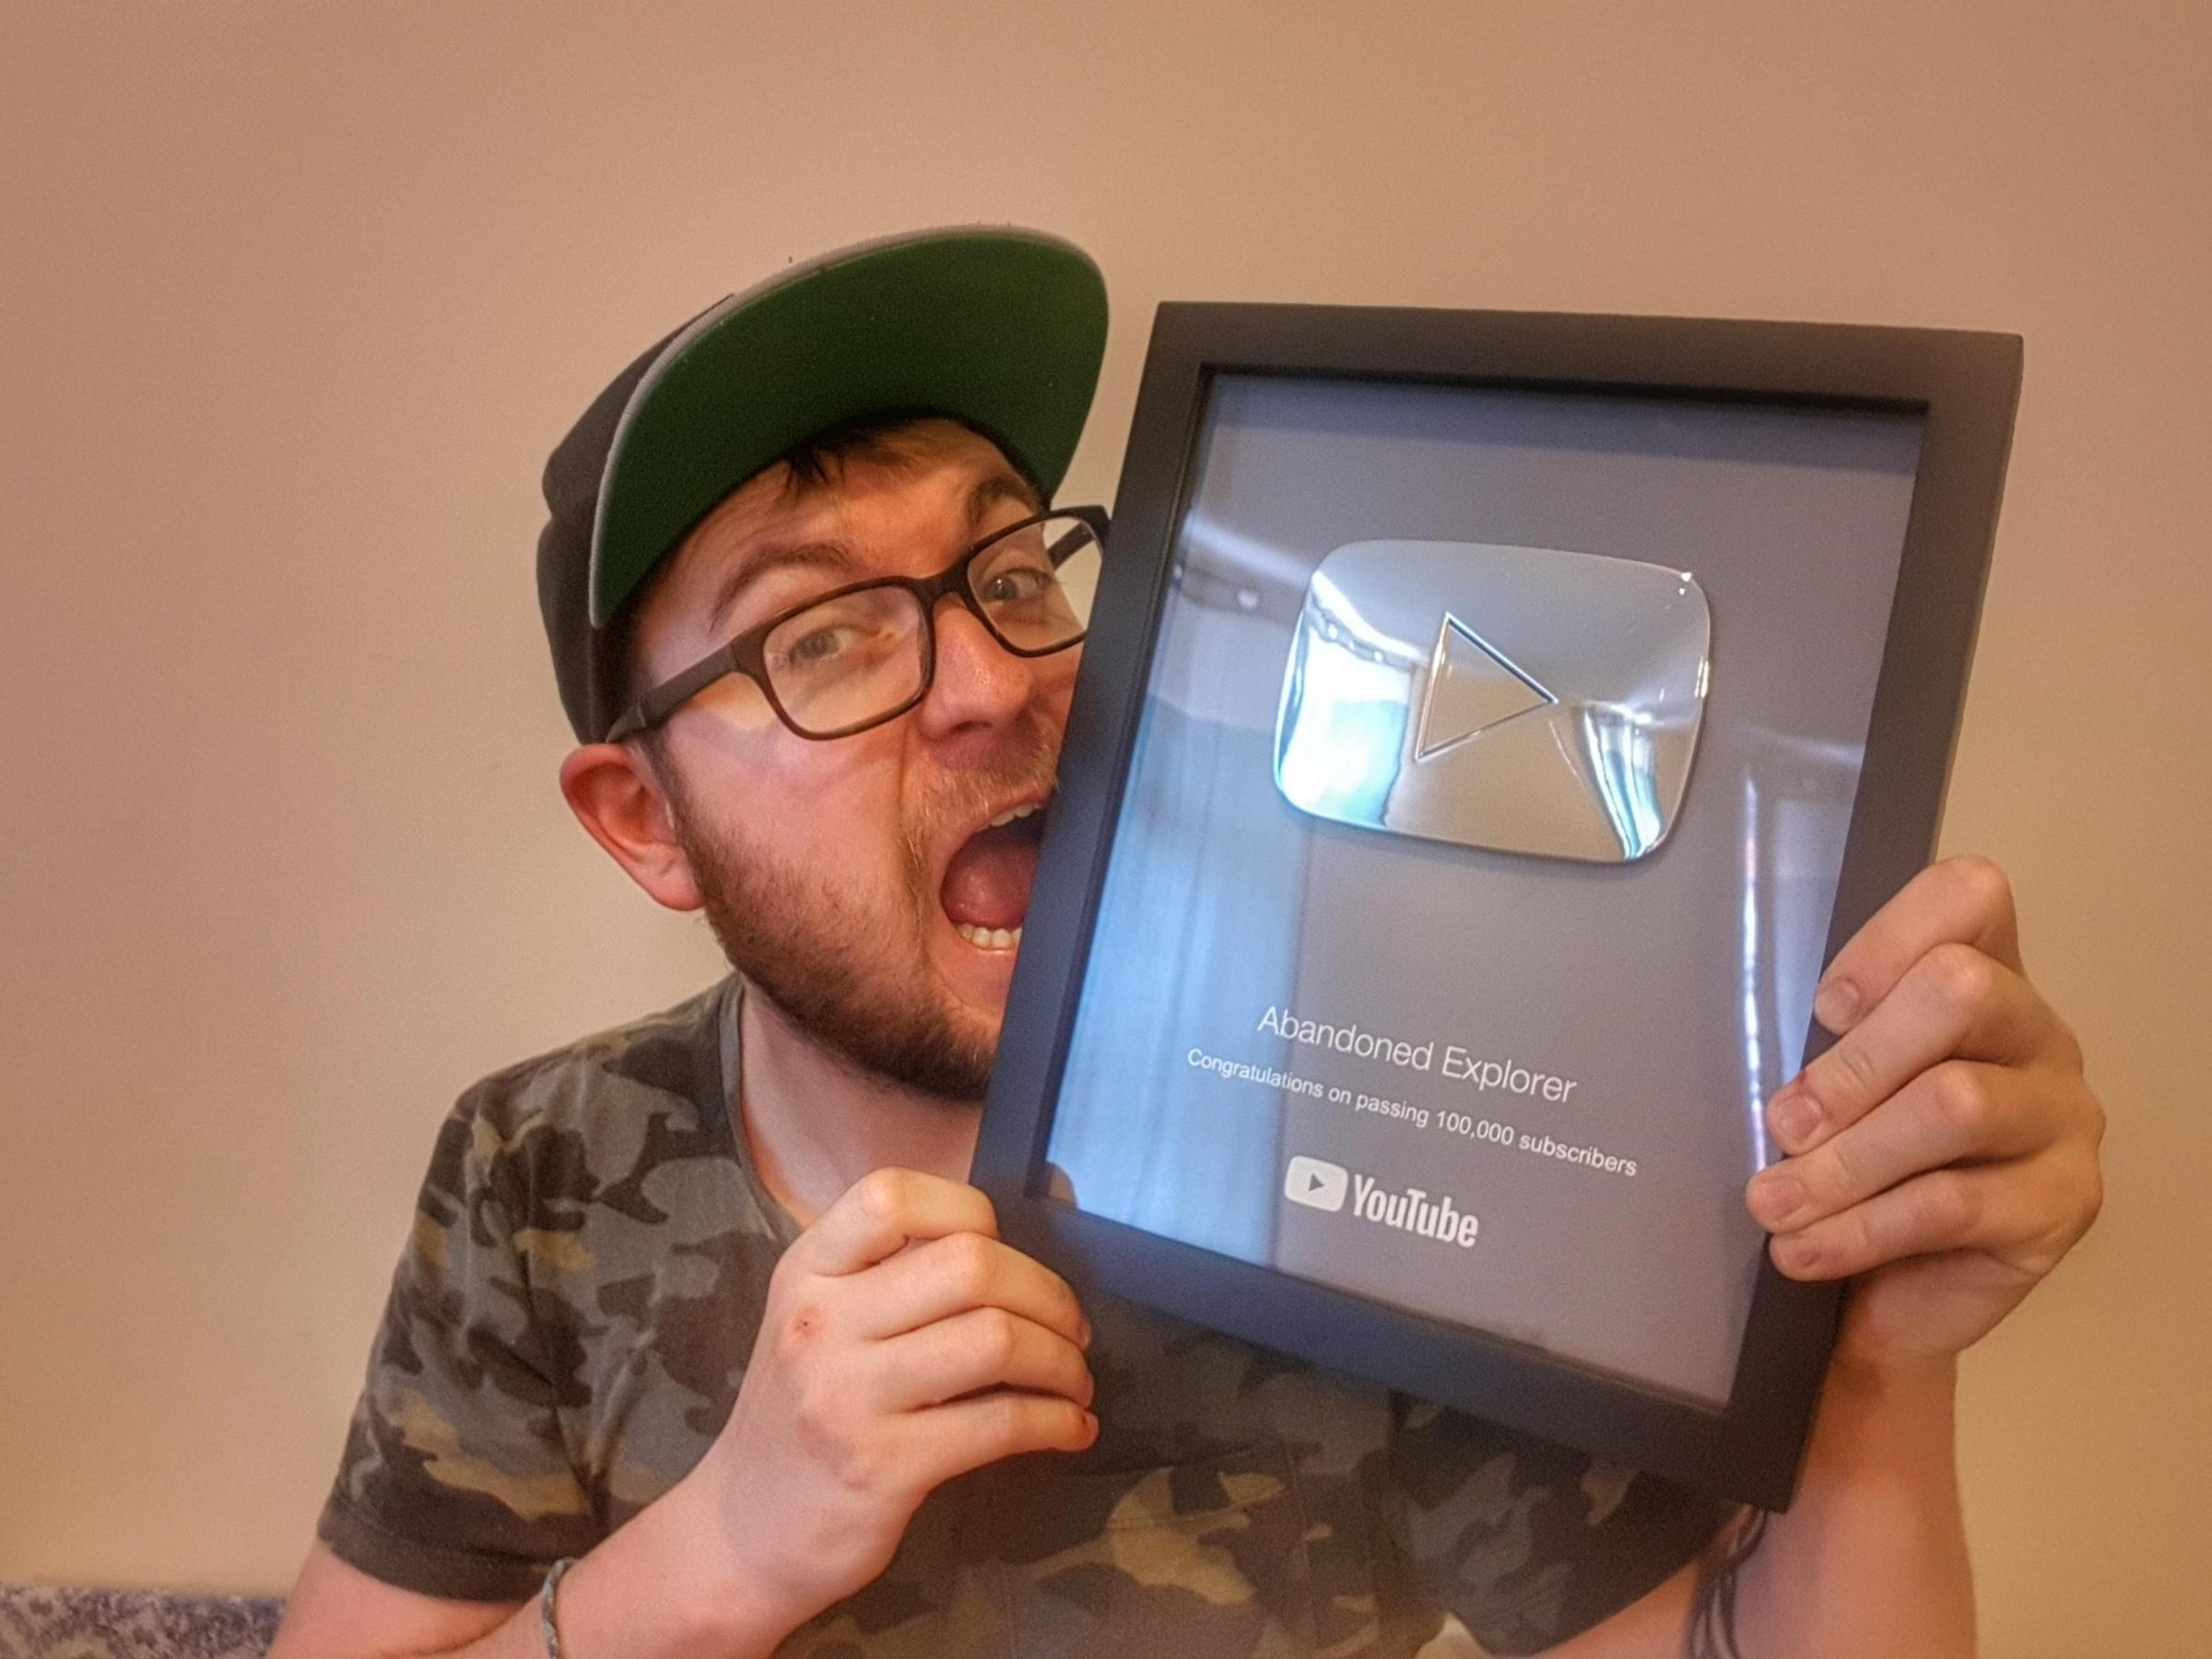 Meet the Weymouth YouTube star with thousands of subscribers